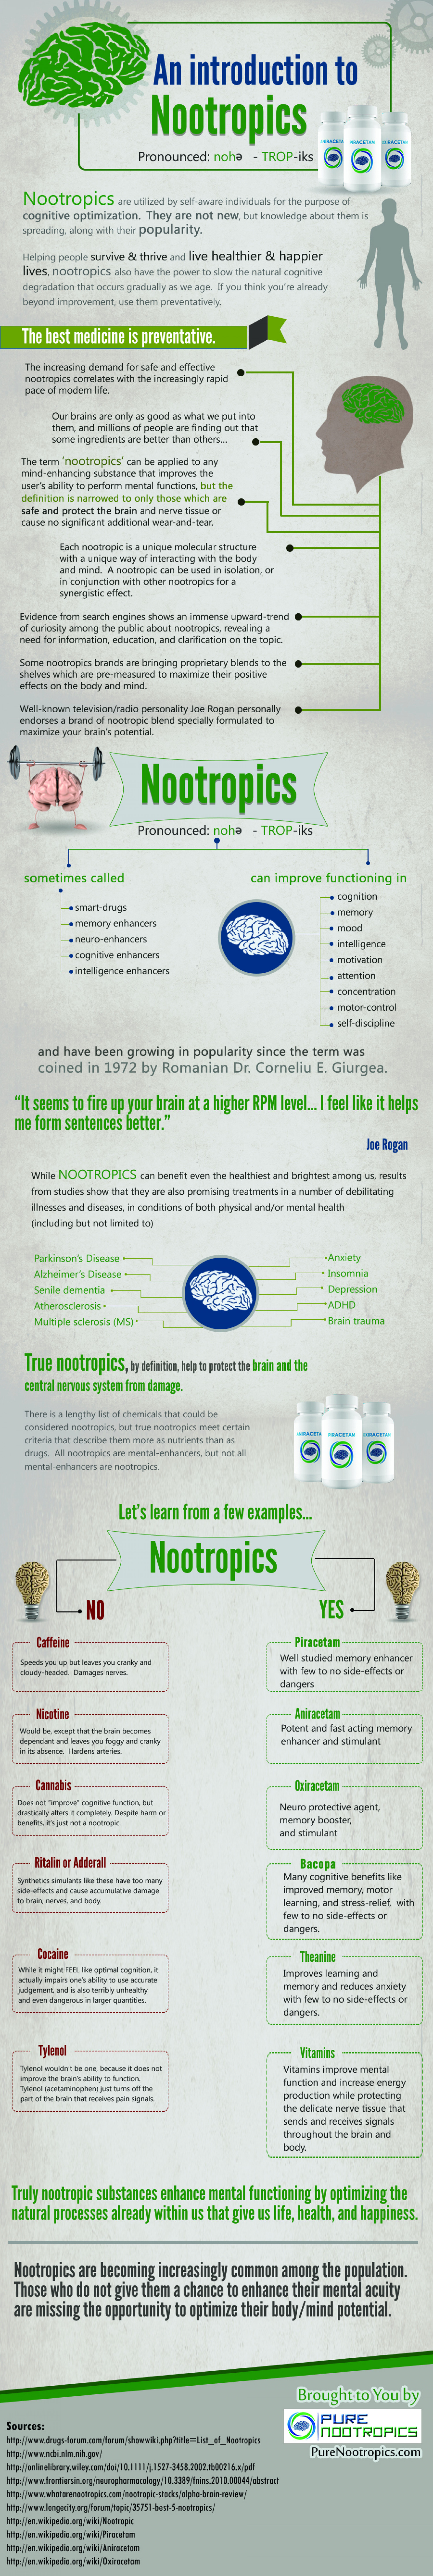 An Introduction to Nootropics Infographic